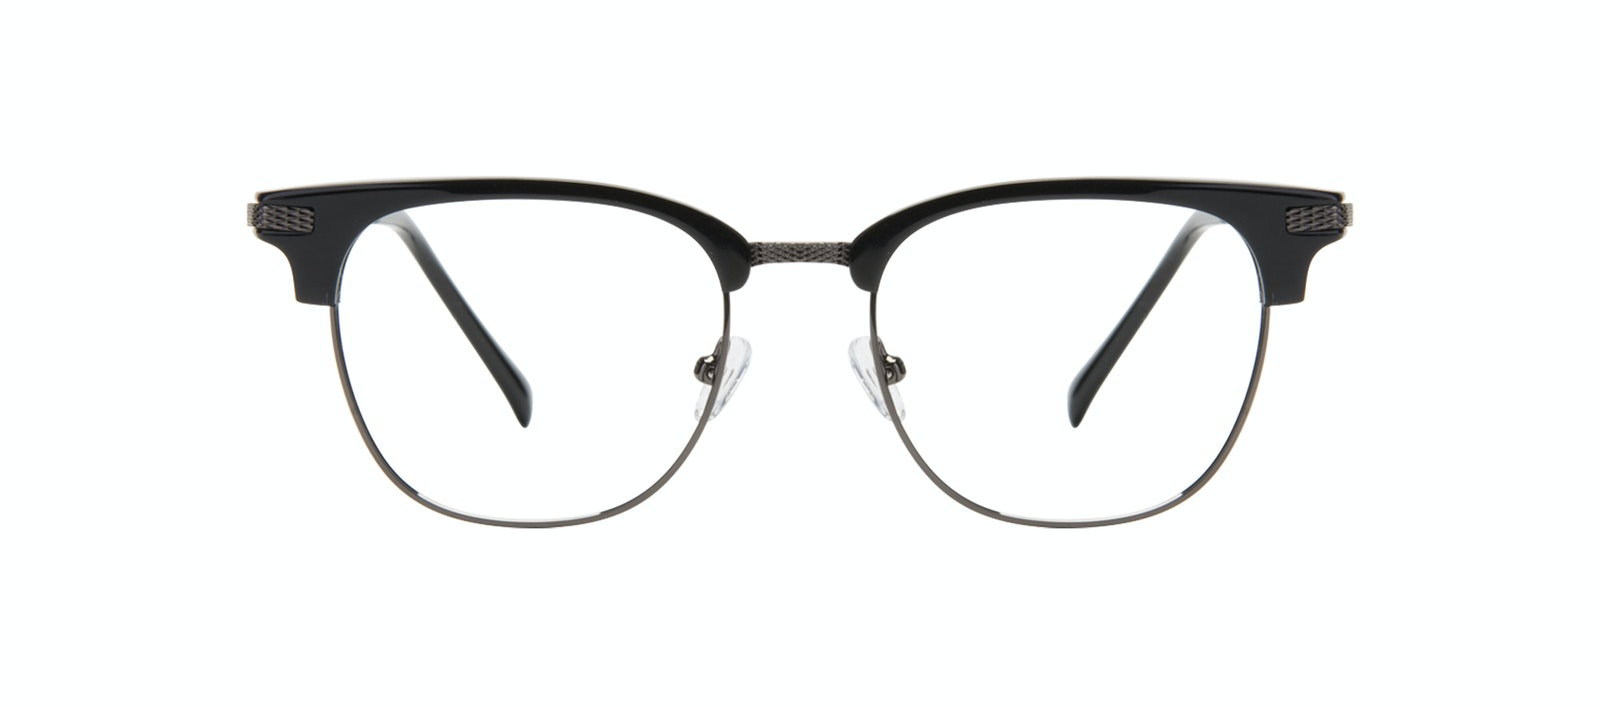 Affordable Fashion Glasses Square Eyeglasses Men Blacktie Onyx Front